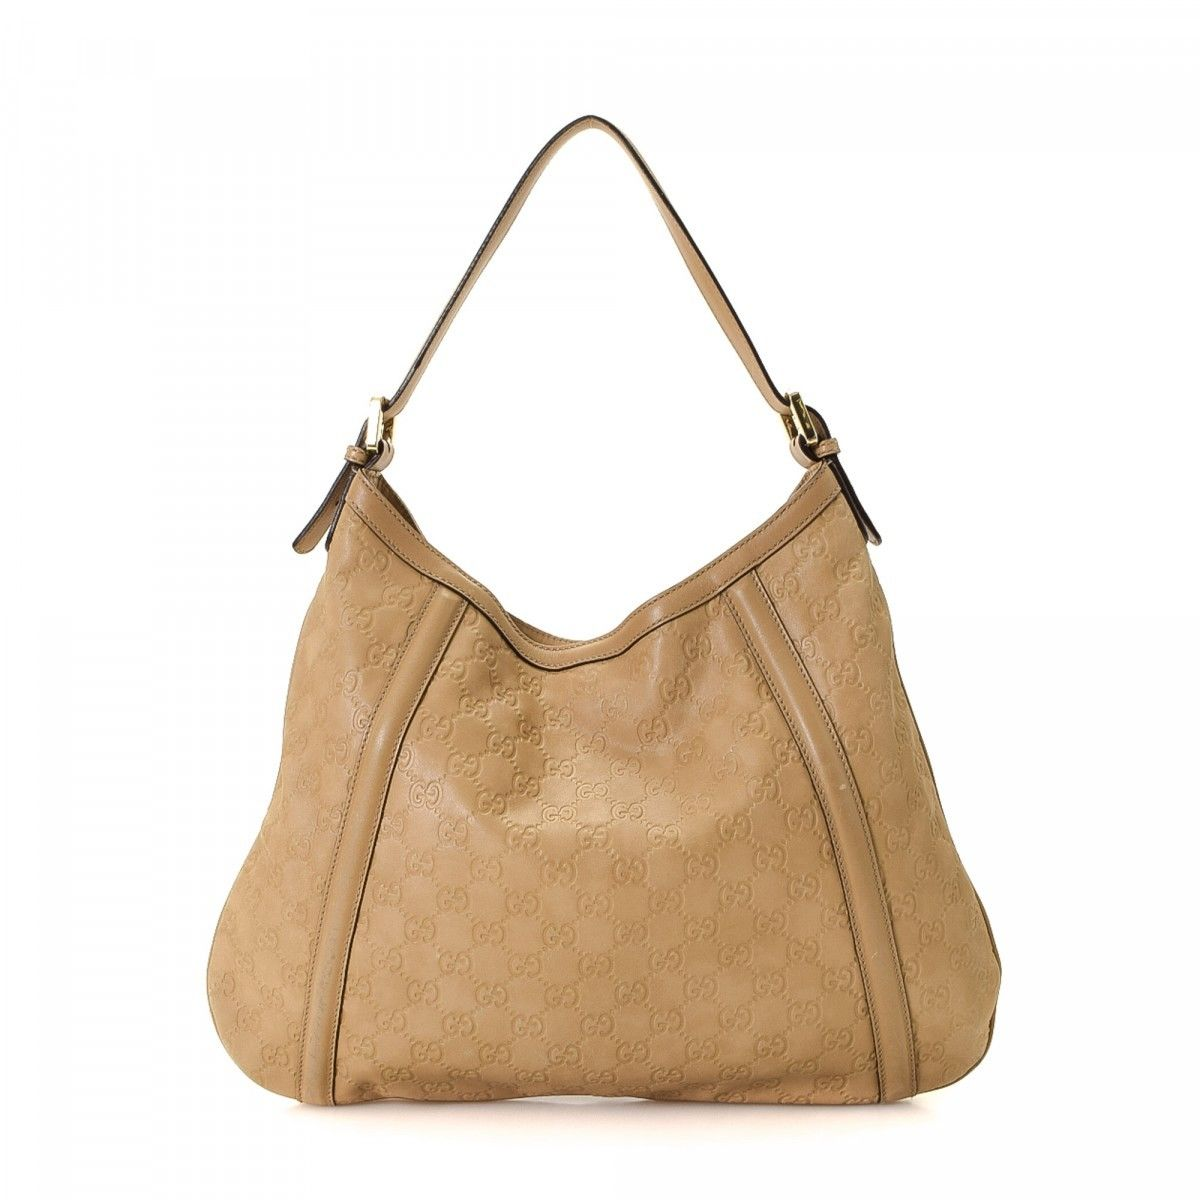 0aa0001dd449a4 Gucci Guccissima Britt Hobo Bag. LXRandCo guarantees the authenticity of  this vintage ...